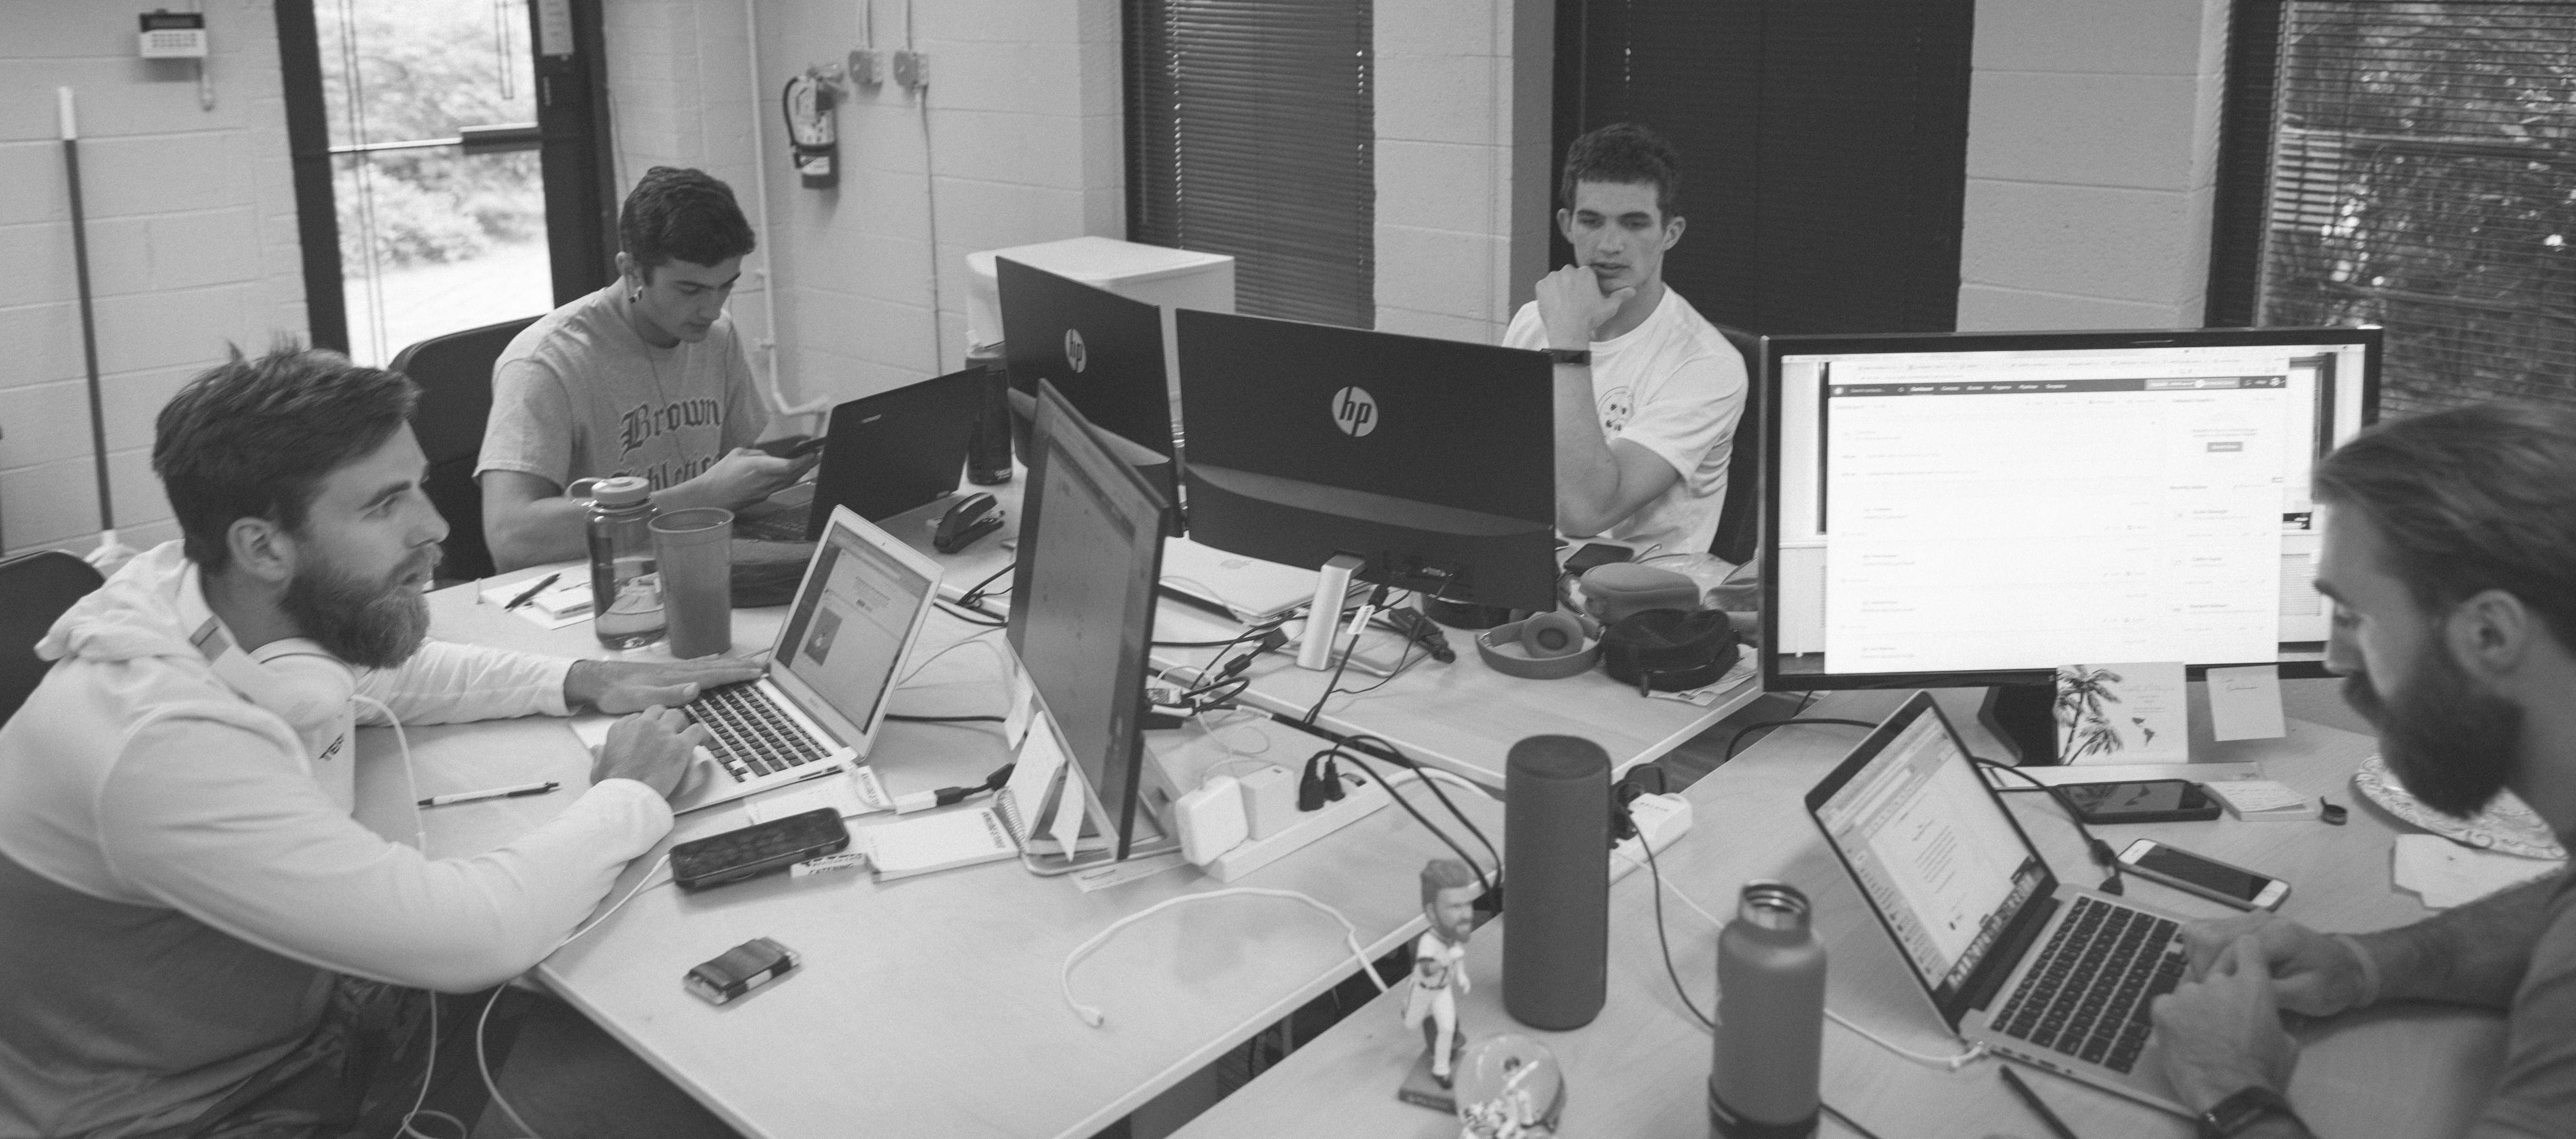 TeamBuildr software team working office